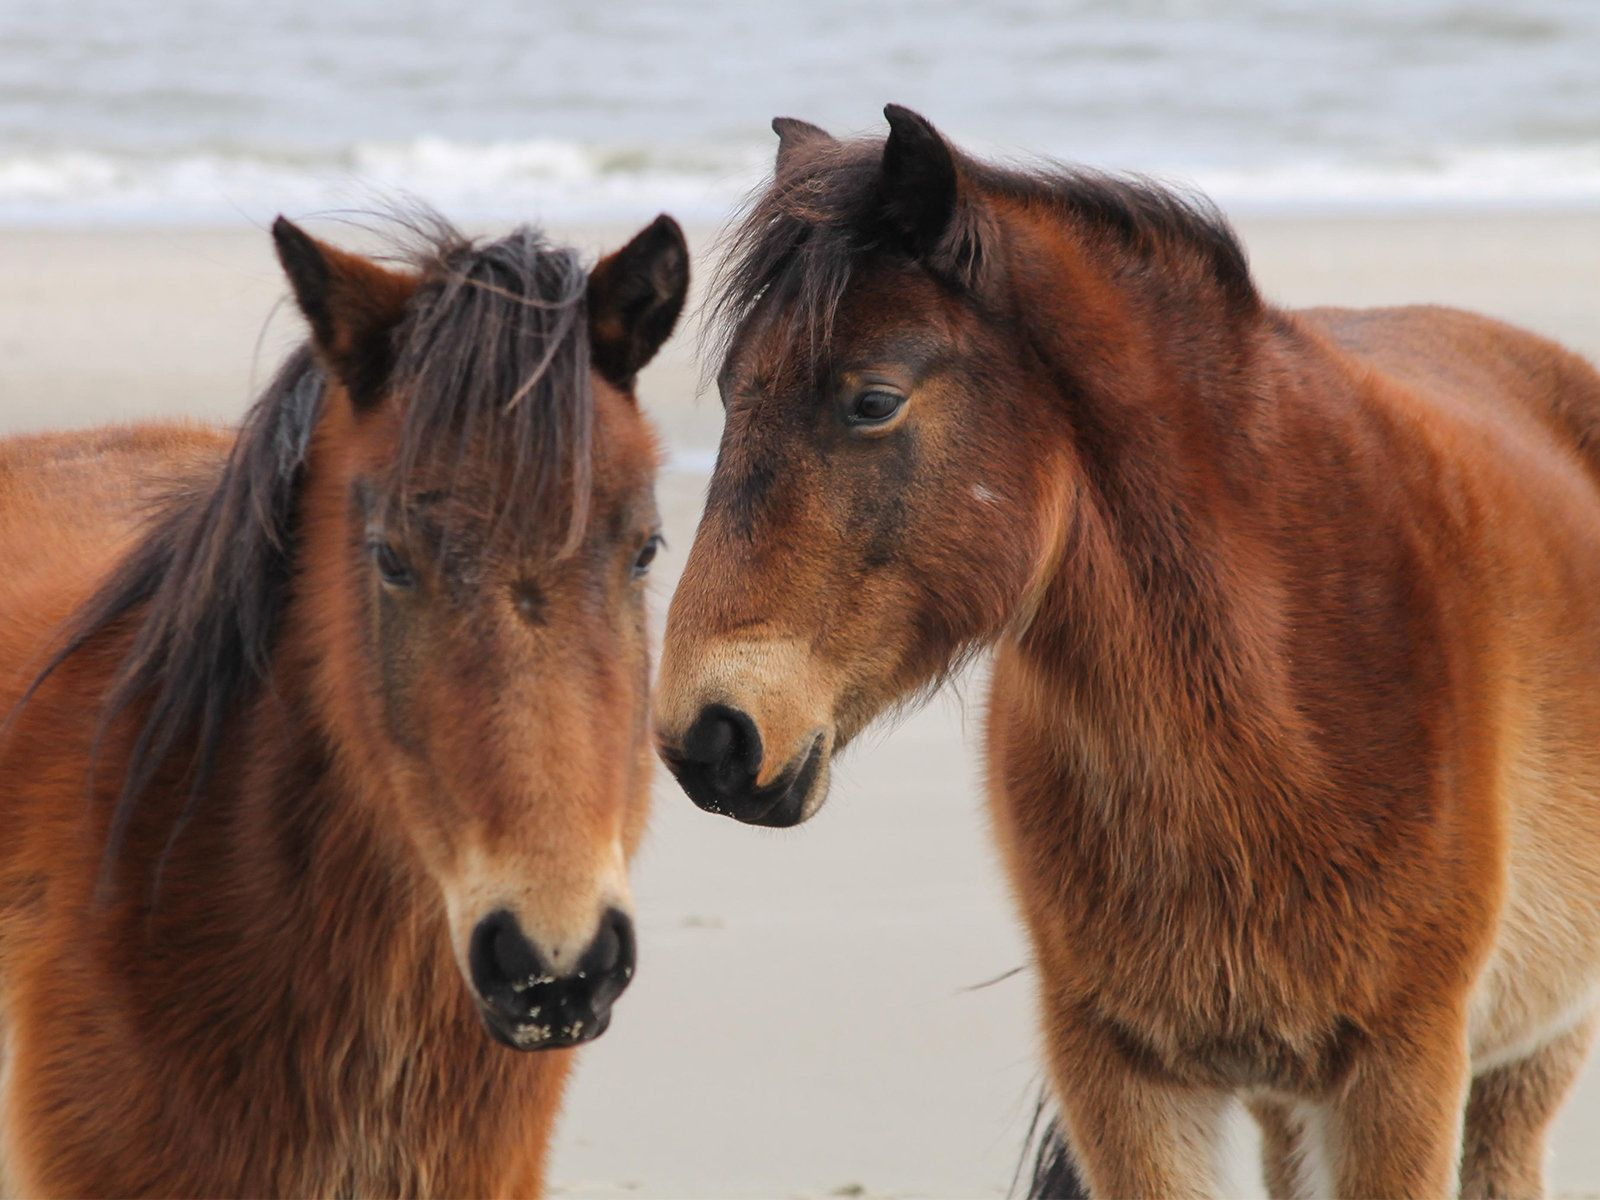 A family of wild horses was spotted roaming the public beaches of Corolla, North Carolina. In search of food, these beautiful horses with their winter coats blowing in the wind were photographed on an overcast day, with a telephoto lens in February.